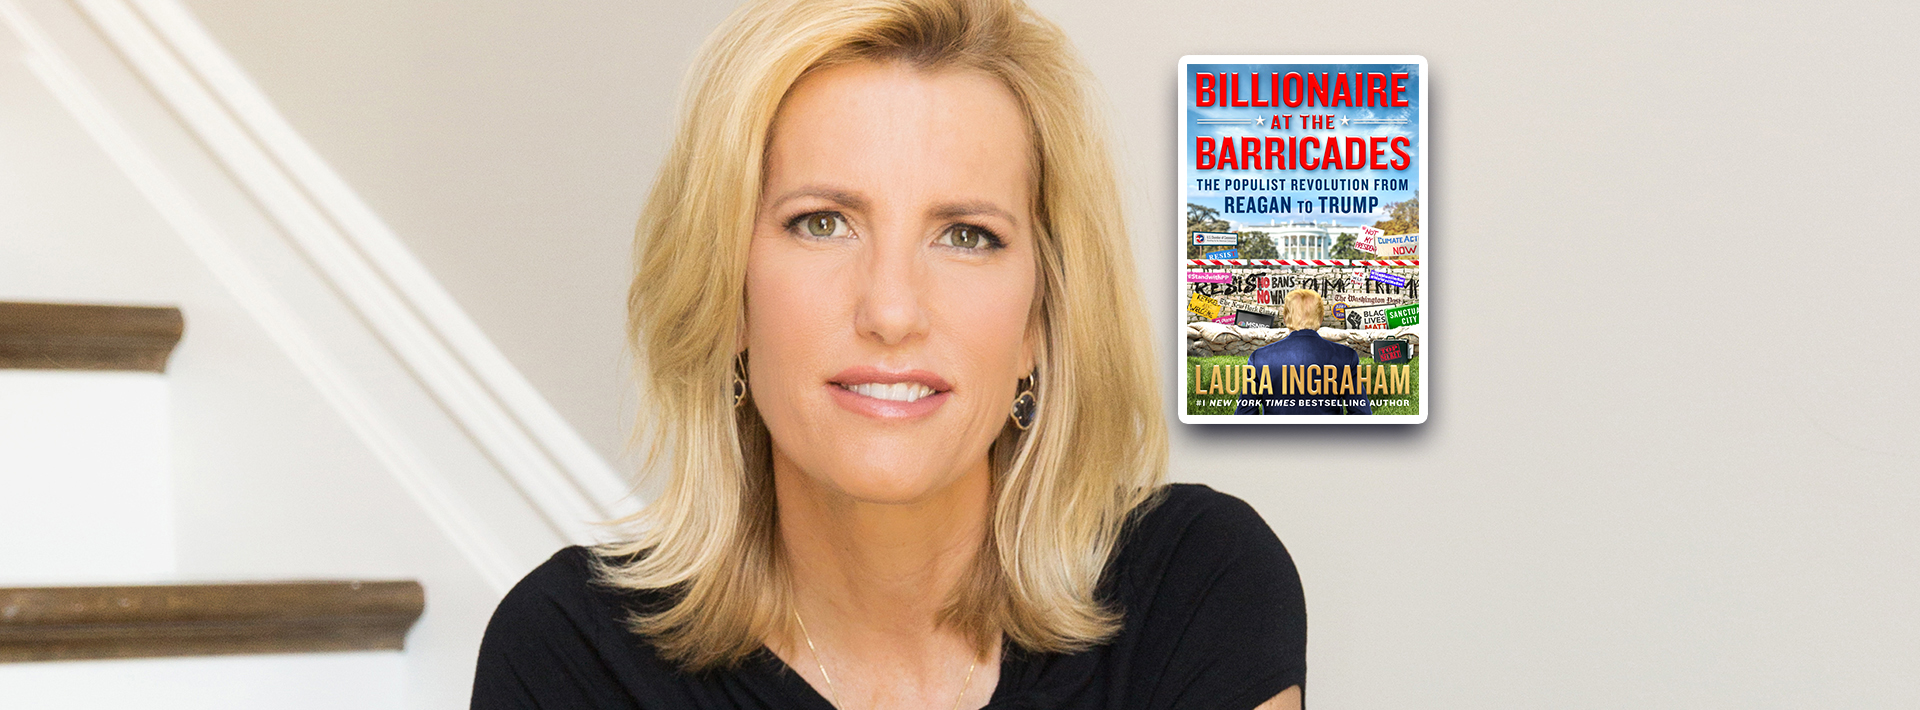 CANCELLED Laura Ingraham: Busting the Barricades Tour 2017